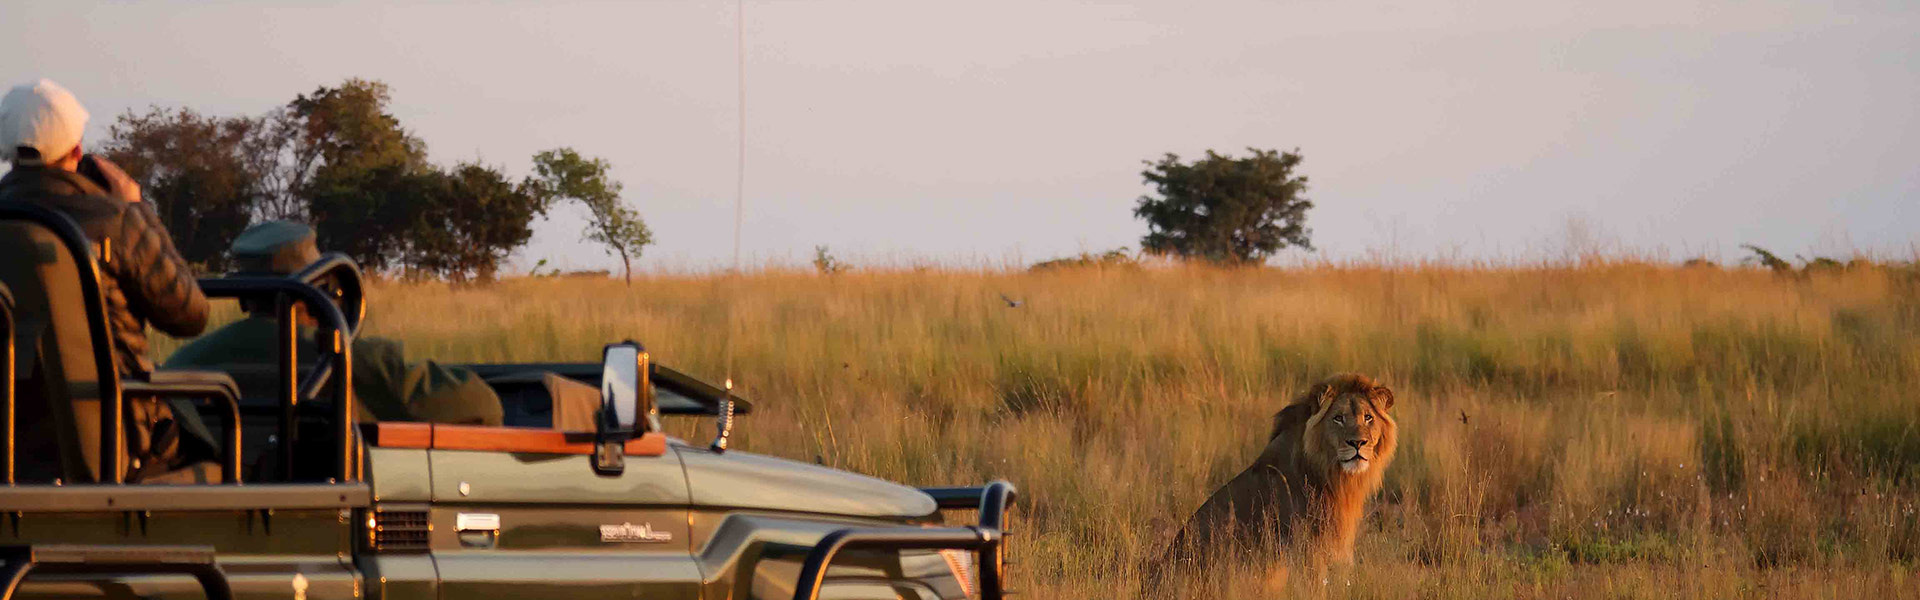 South Luangwa & Liuwa Plains en lodges d'exception | Sous l'Acacia